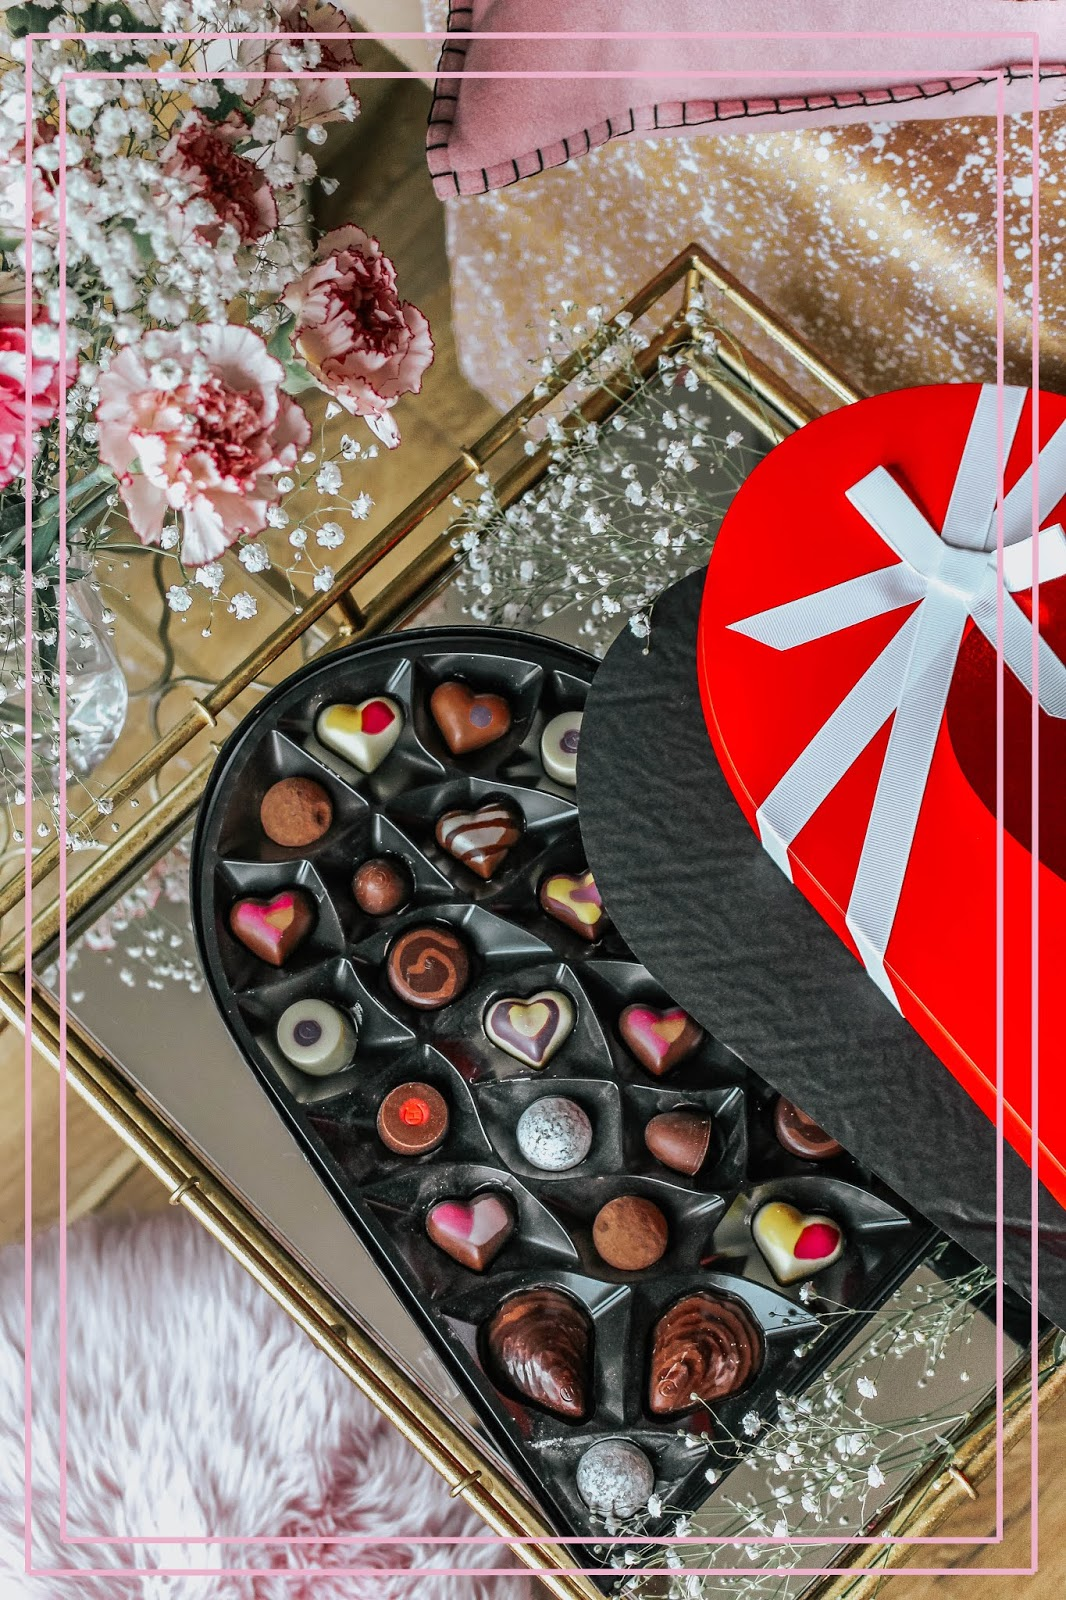 Hotel Chocolat Valentine's Heart Shaped Chocolate Box